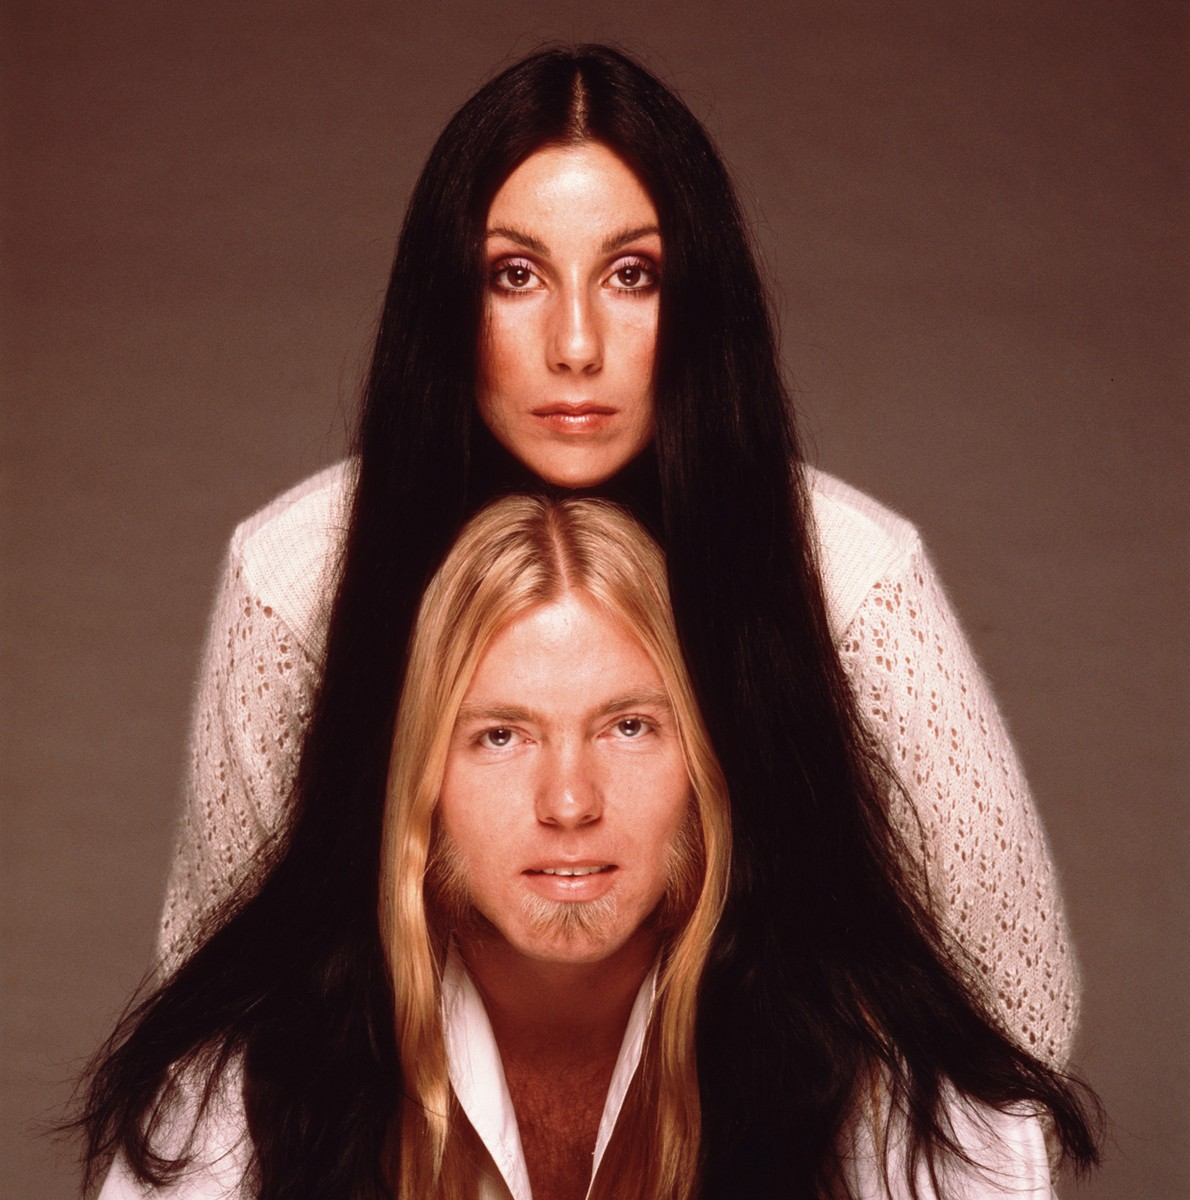 Cher and Gregg Allman photographed in the 1970s.